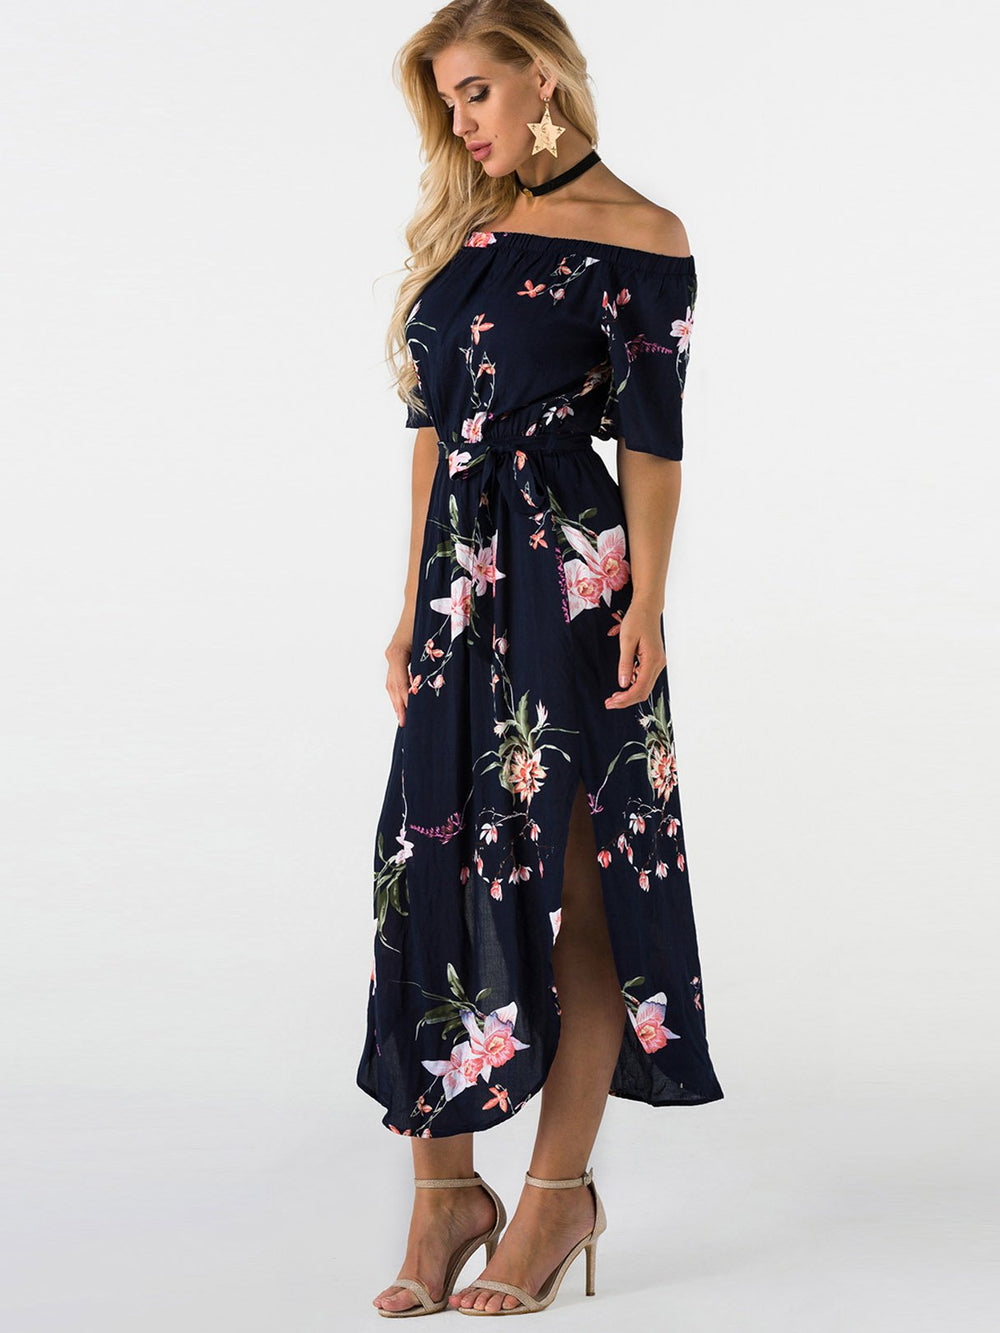 Ladies Navy Floral Dresses